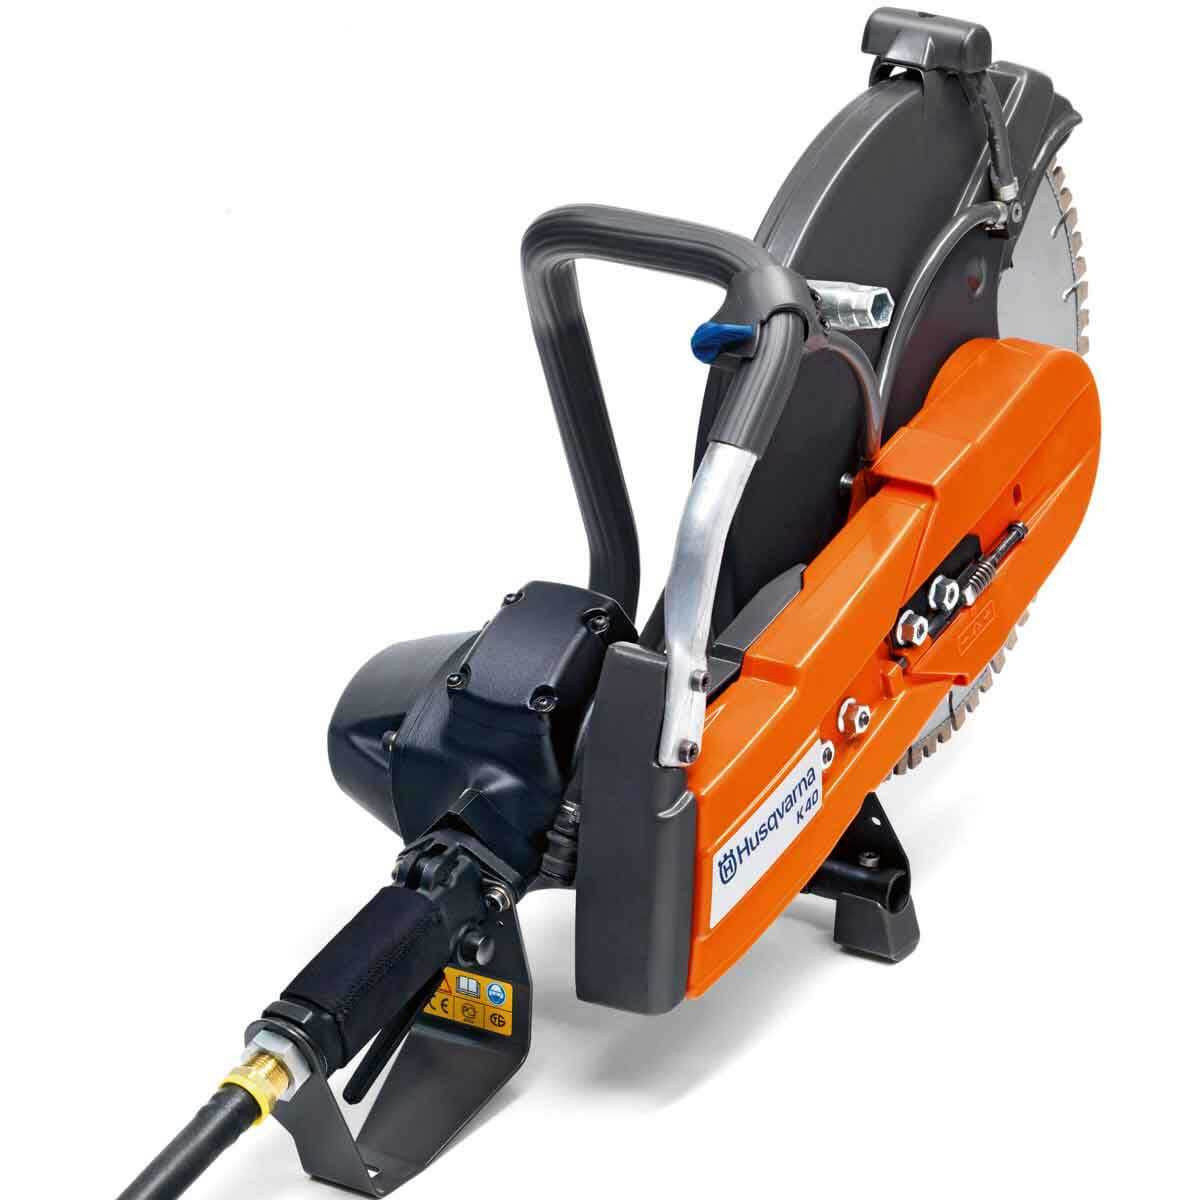 Husqvarna K40 Air cut off saw